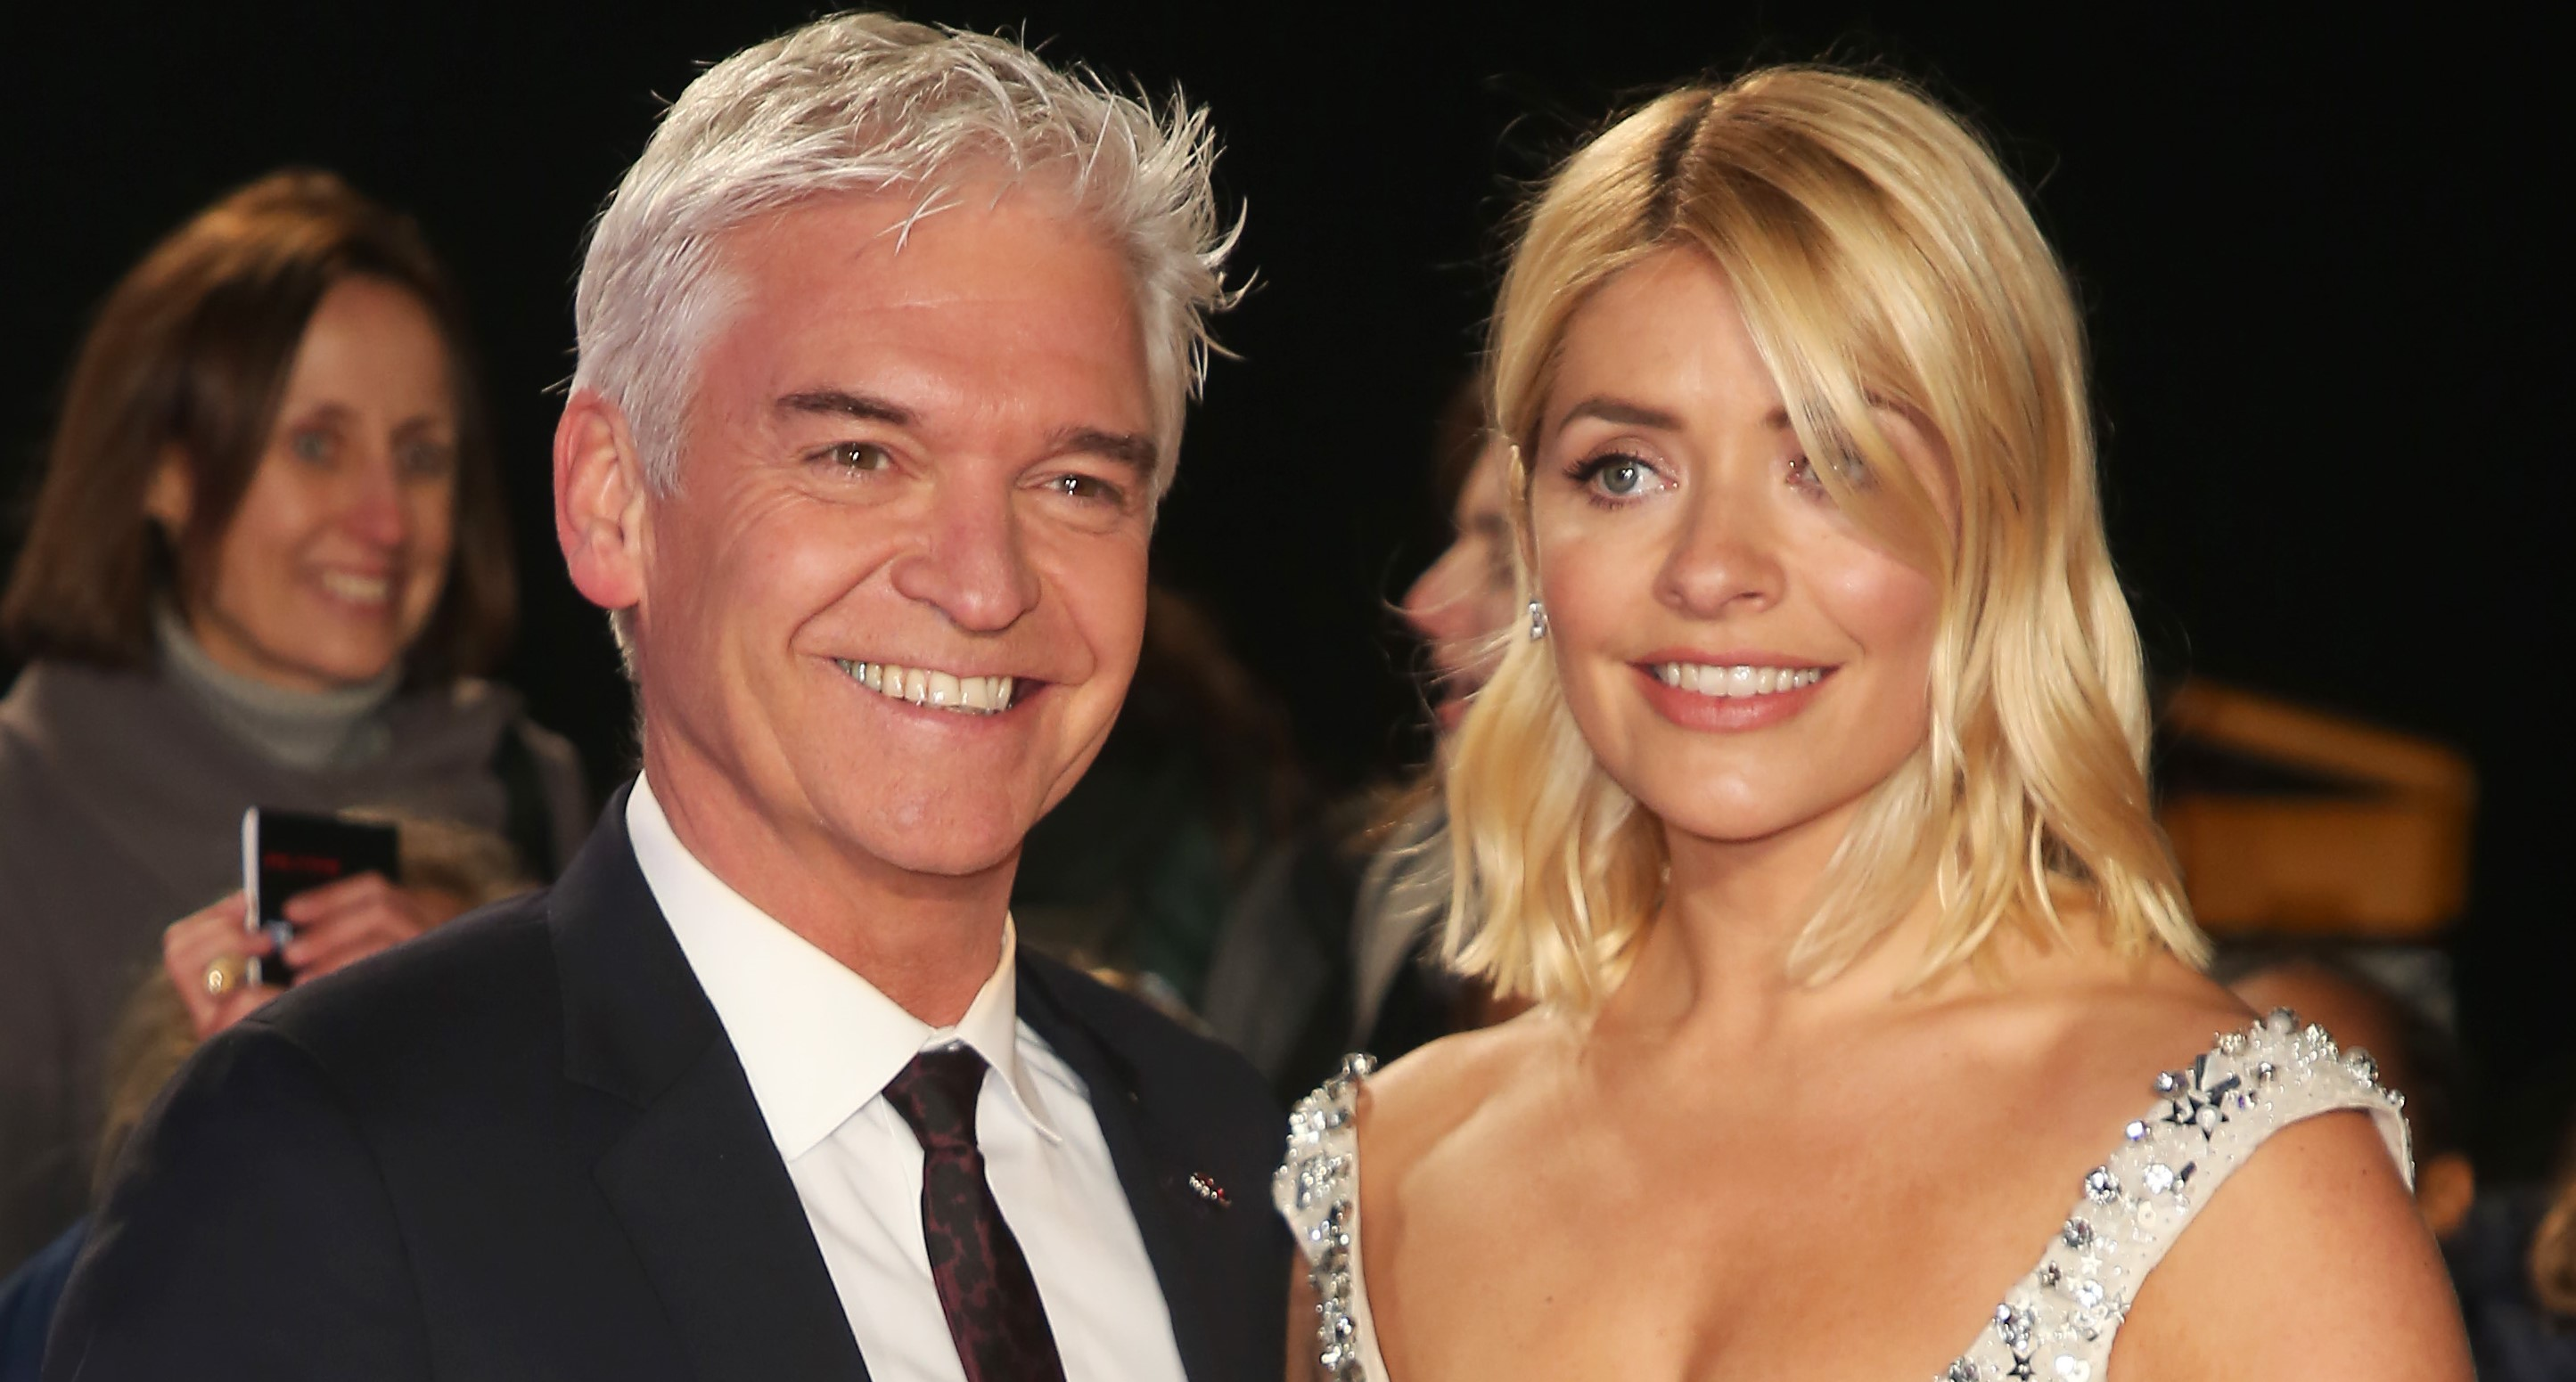 Holly Willoughby horrified as husband Dan suffers hilarious mishap on holiday with Phillip Schofield